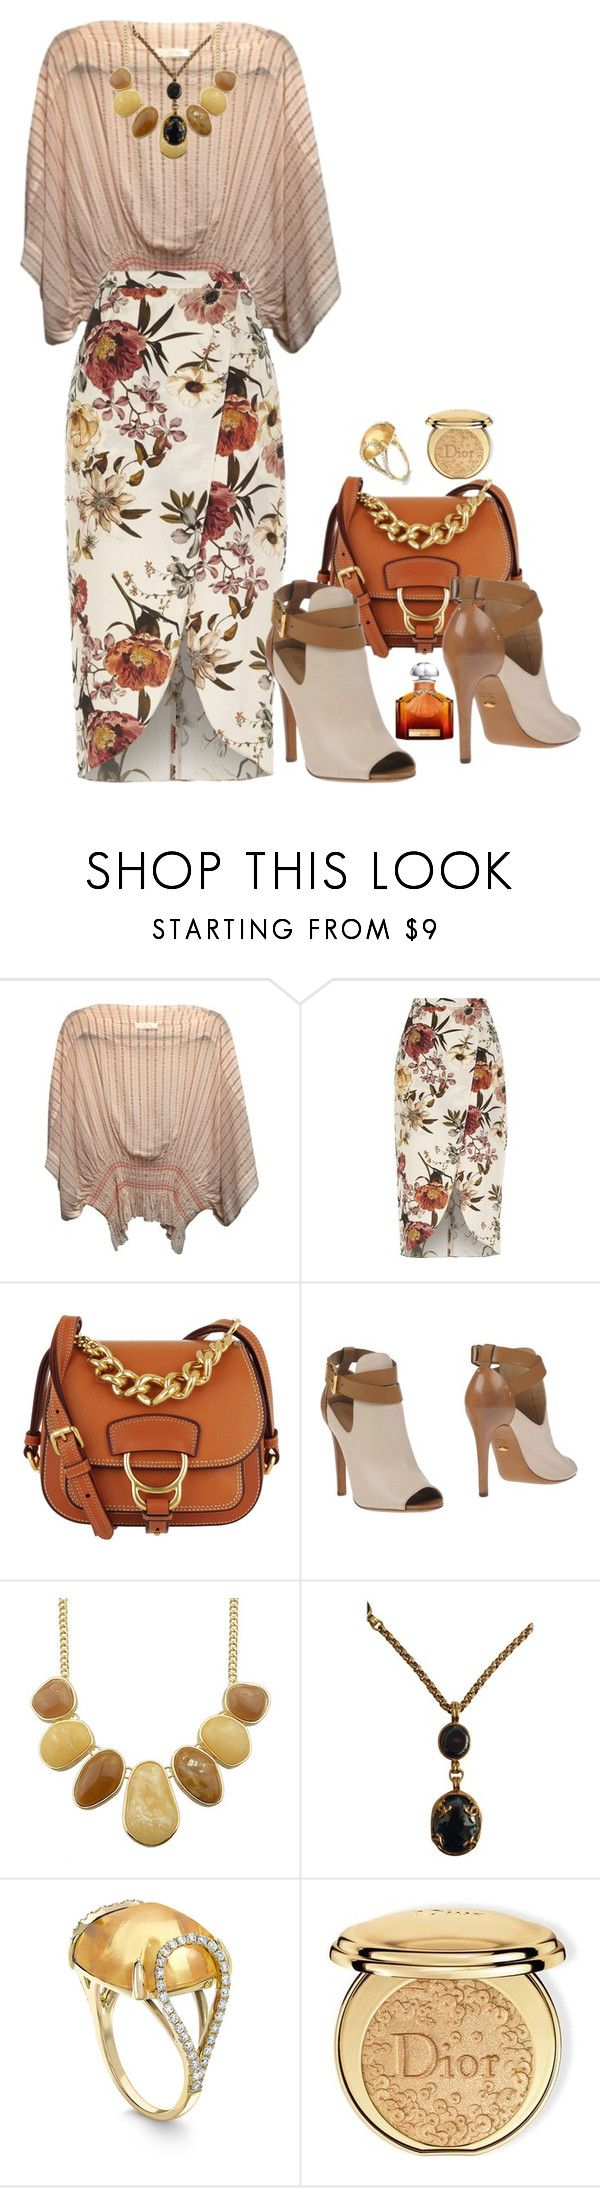 """It's not summer, but it's not autumn yet ..."" by m-kints ❤ liked on Polyvore featuring River Island, Miu Miu, Sergio Rossi, Chanel, Christian Dior, Guerlain and Your"